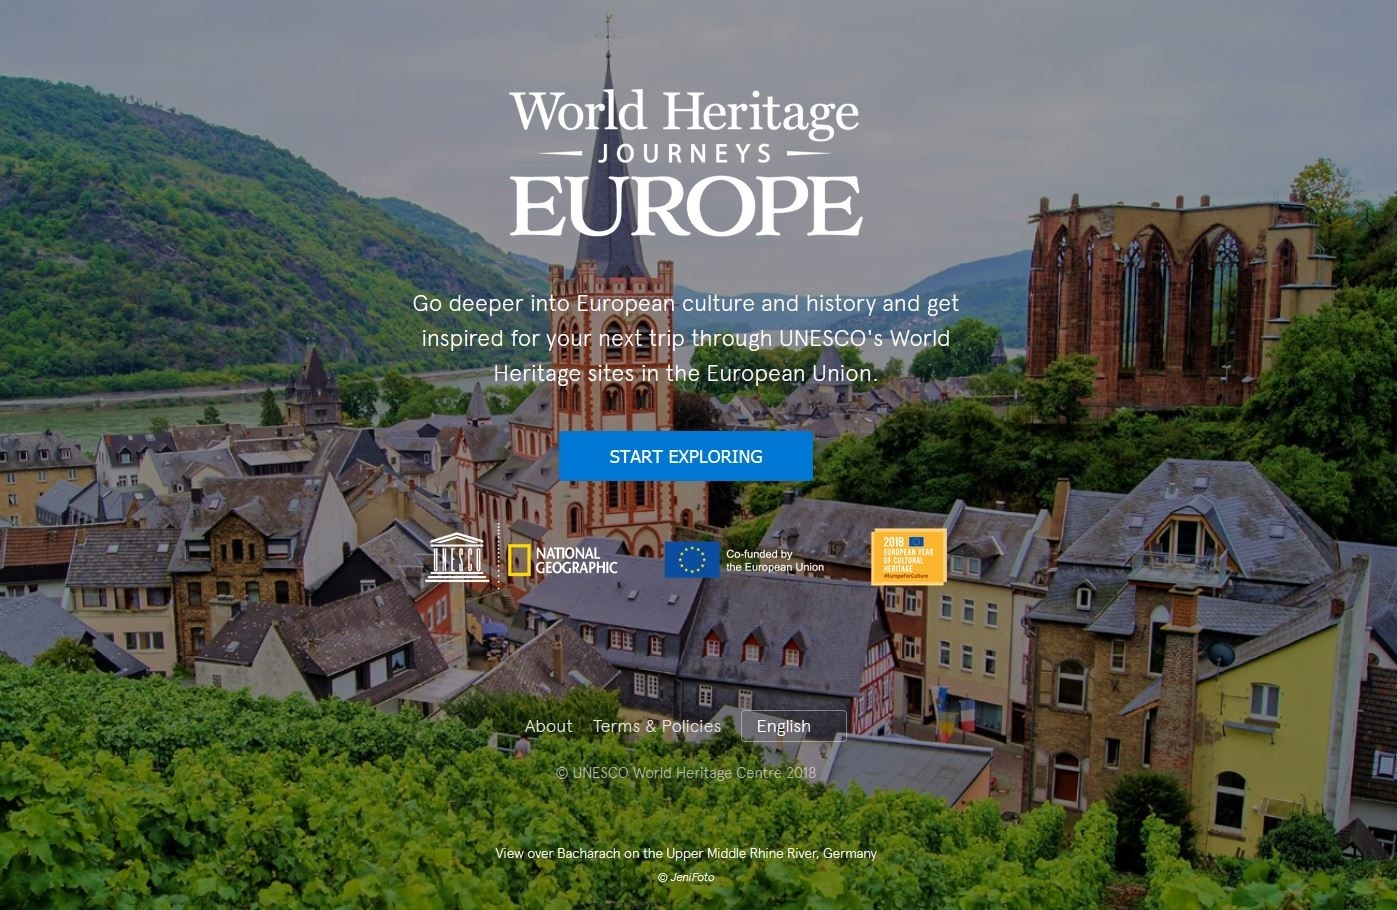 Screenshot- Visitworldheritage (2).jpg